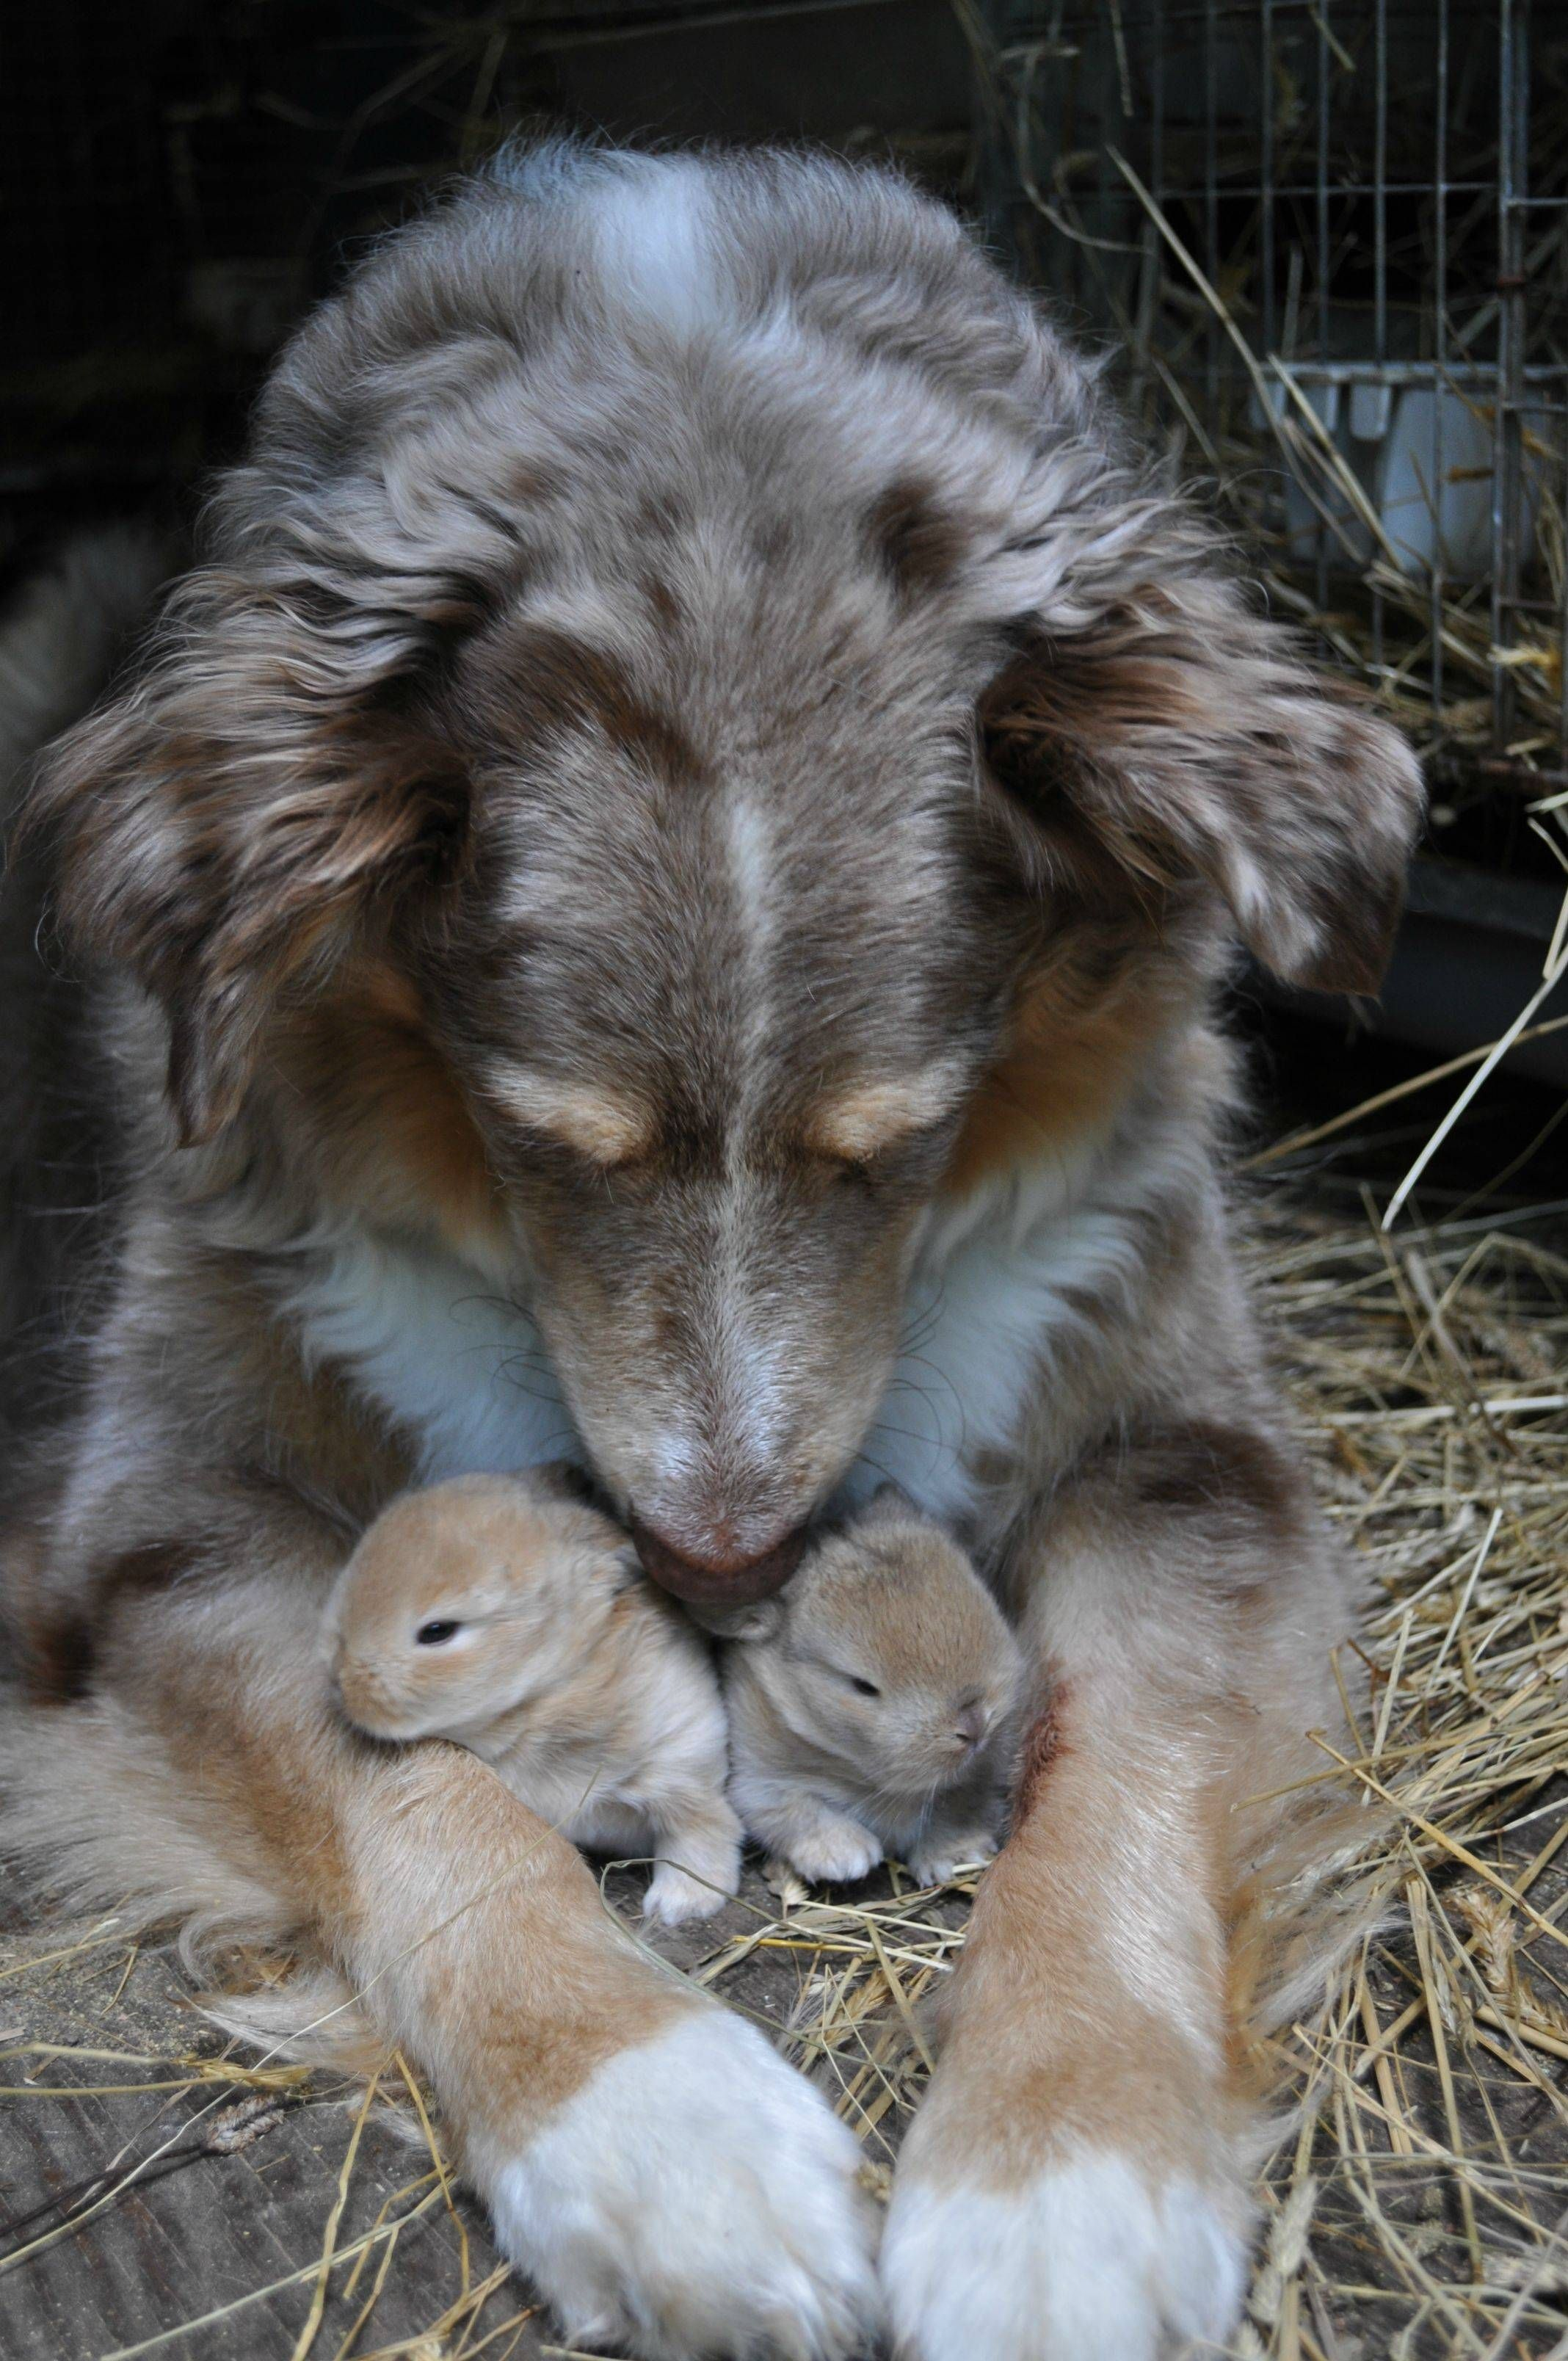 Puppy taking care of bunnies.